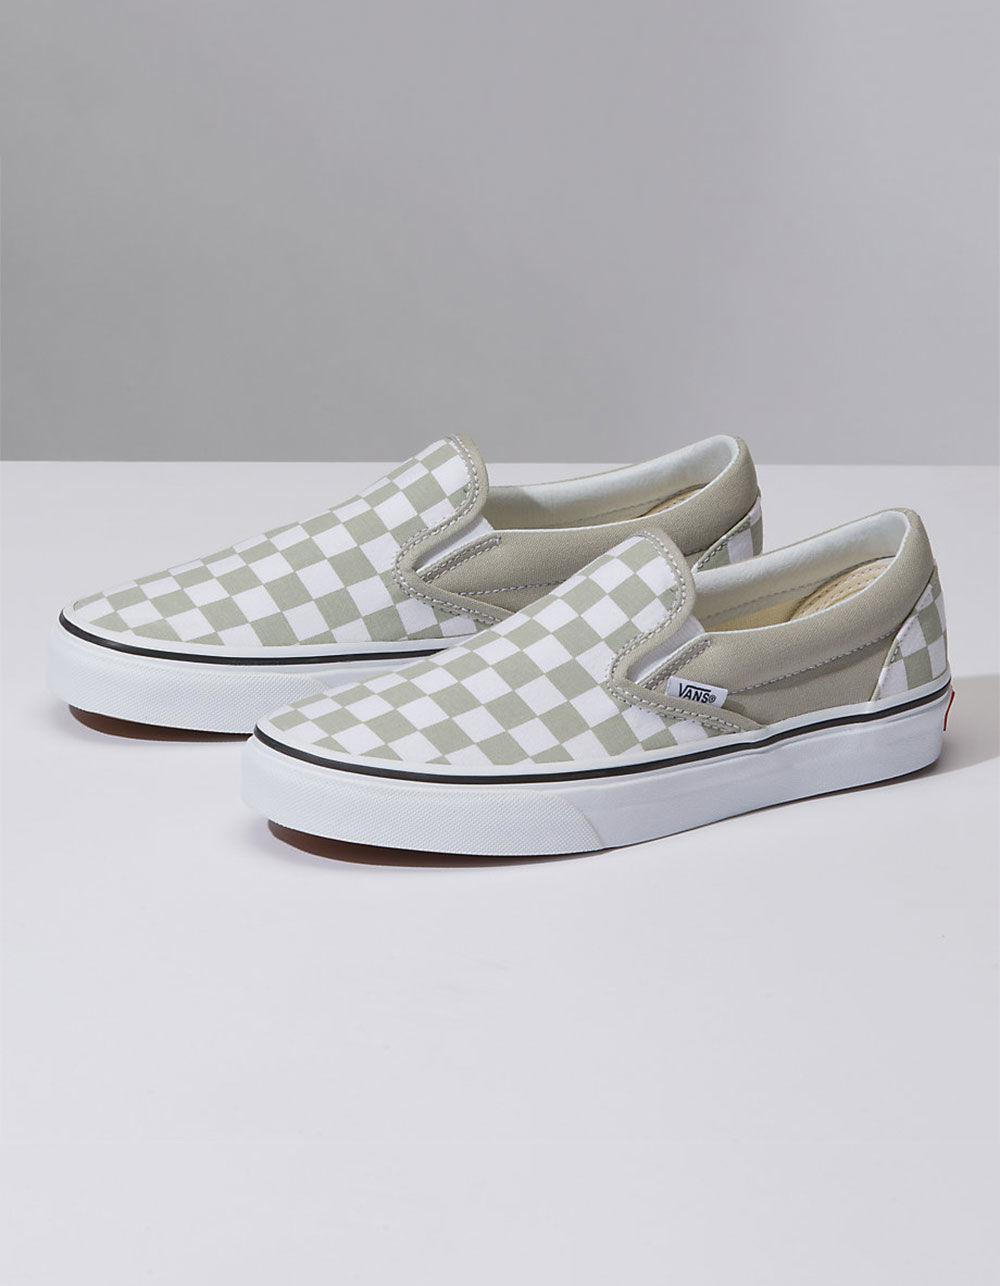 9f87192b07a750 Vans - Multicolor Checkerboard Classic Slip-on Desert Sage Womens Shoes -  Lyst. View fullscreen